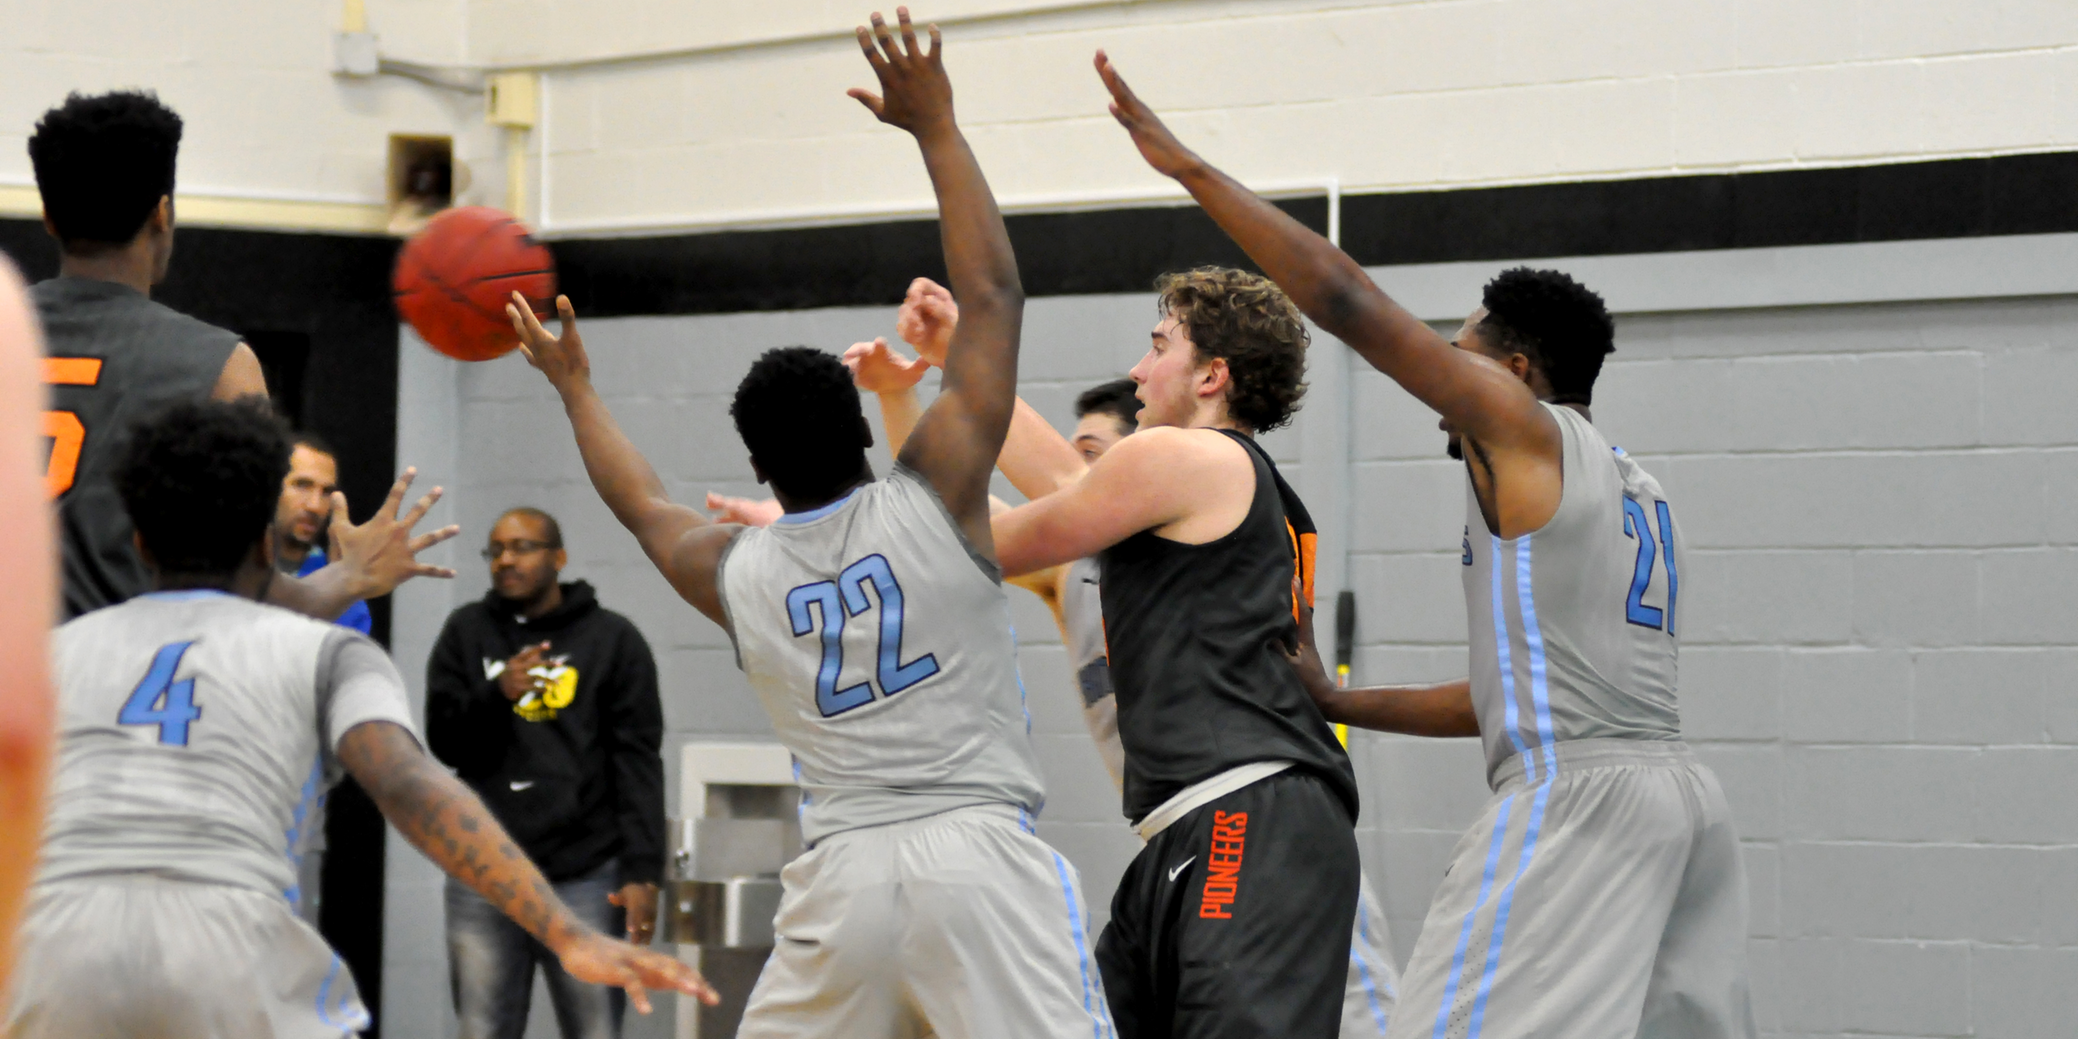 Lewis & Clark nearly rallies back from 19-point deficit in season opener